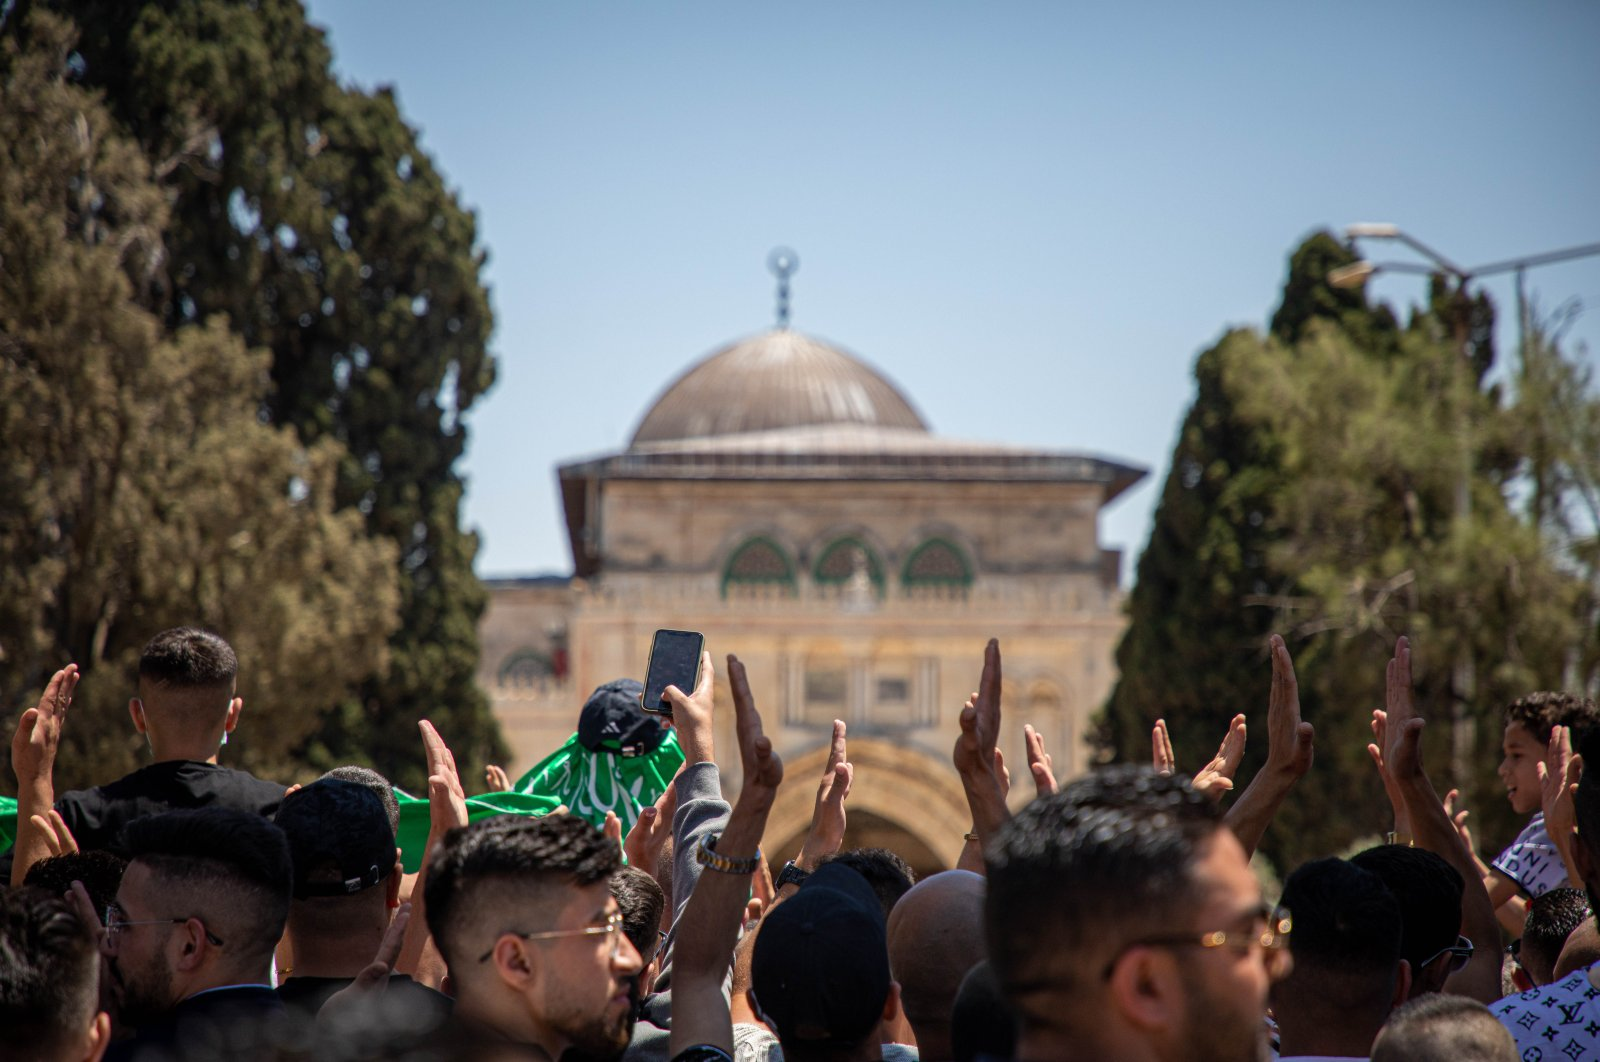 Palestinian Muslim worshippers chant slogans calling on military support from Turkey following Friday prayers in Jerusalem's al-Aqsa mosque compound, the third holiest site of Islam, on May 14, 2021. (AA Photo)